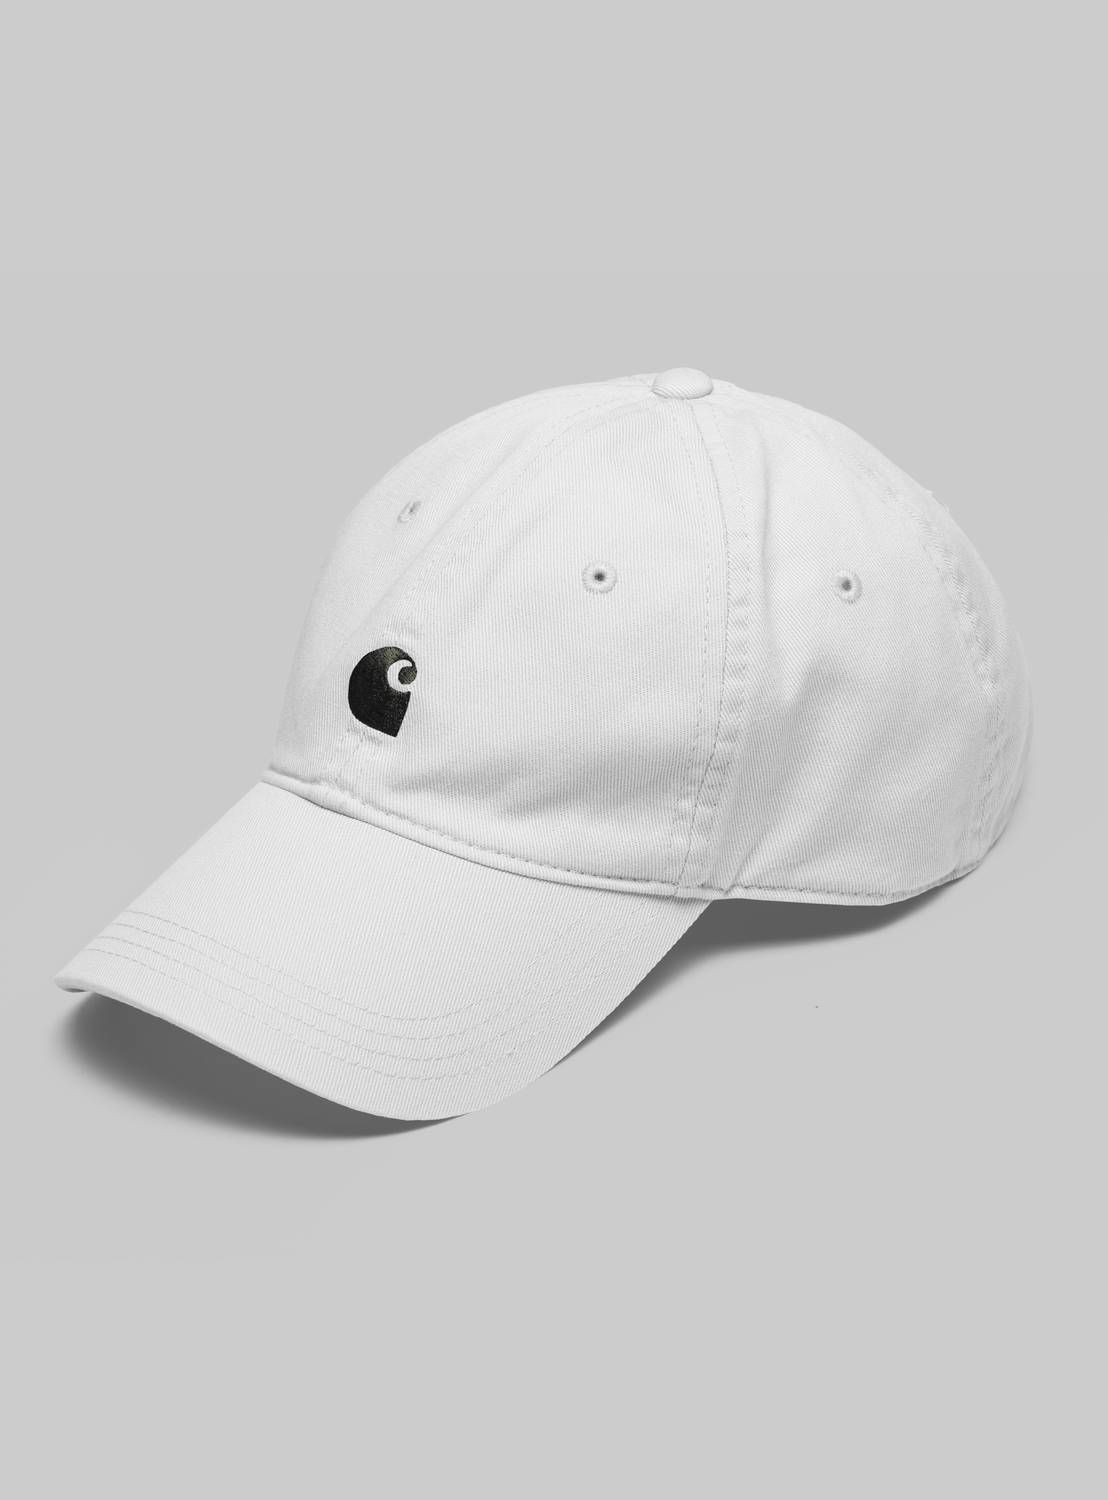 Shop the Carhartt WIP Major Cap from the offical online store ... 2b1a6328482